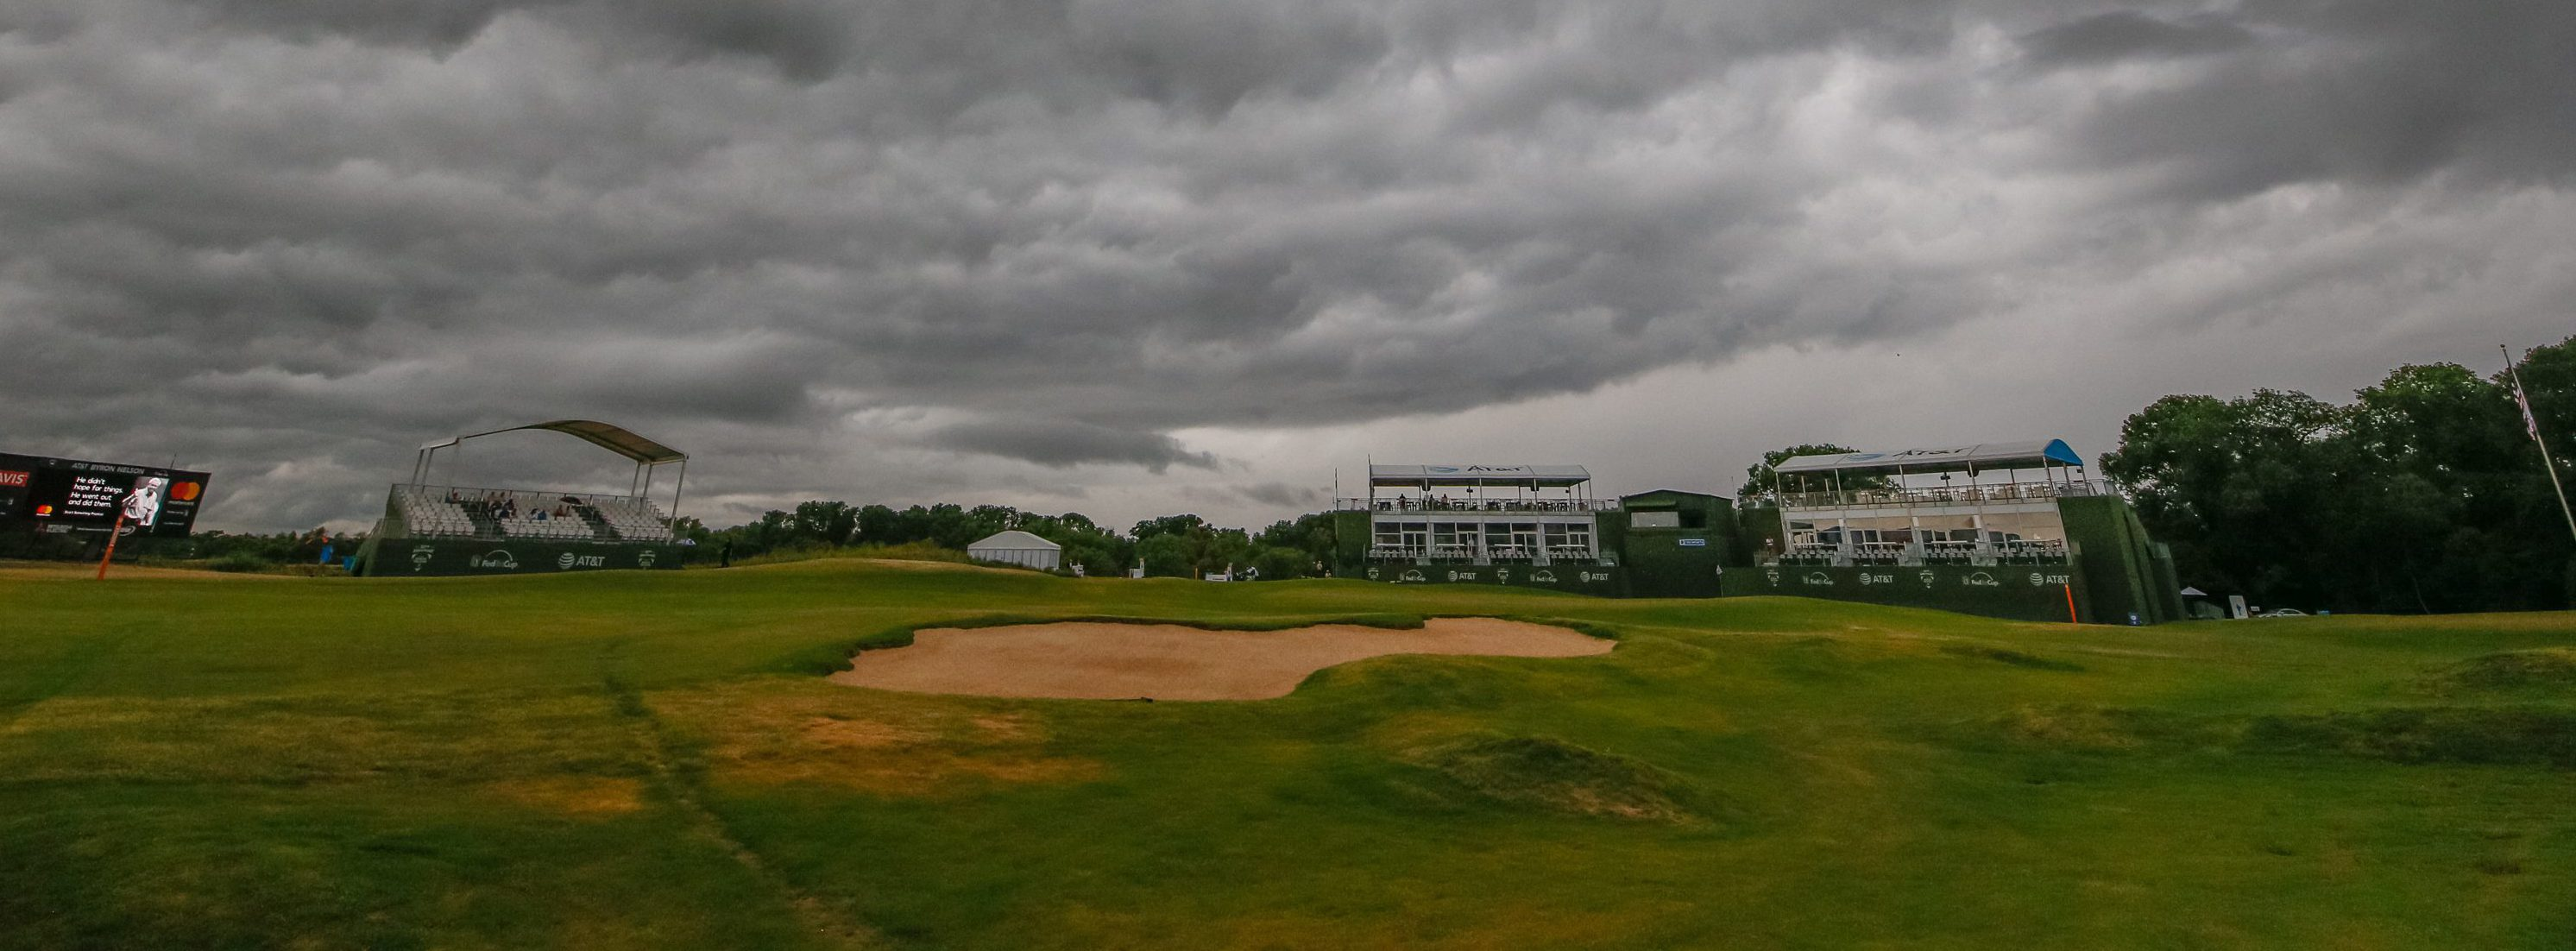 May 20, 2018; Dallas, TX, USA; Low clouds hang over the 18th hole, forcing at the time a one hour delay prior to the final round of the AT&T Byron Nelson golf tournament at Trinity Forest Golf Club. Mandatory Credit: Ray Carlin-USA TODAY Sports